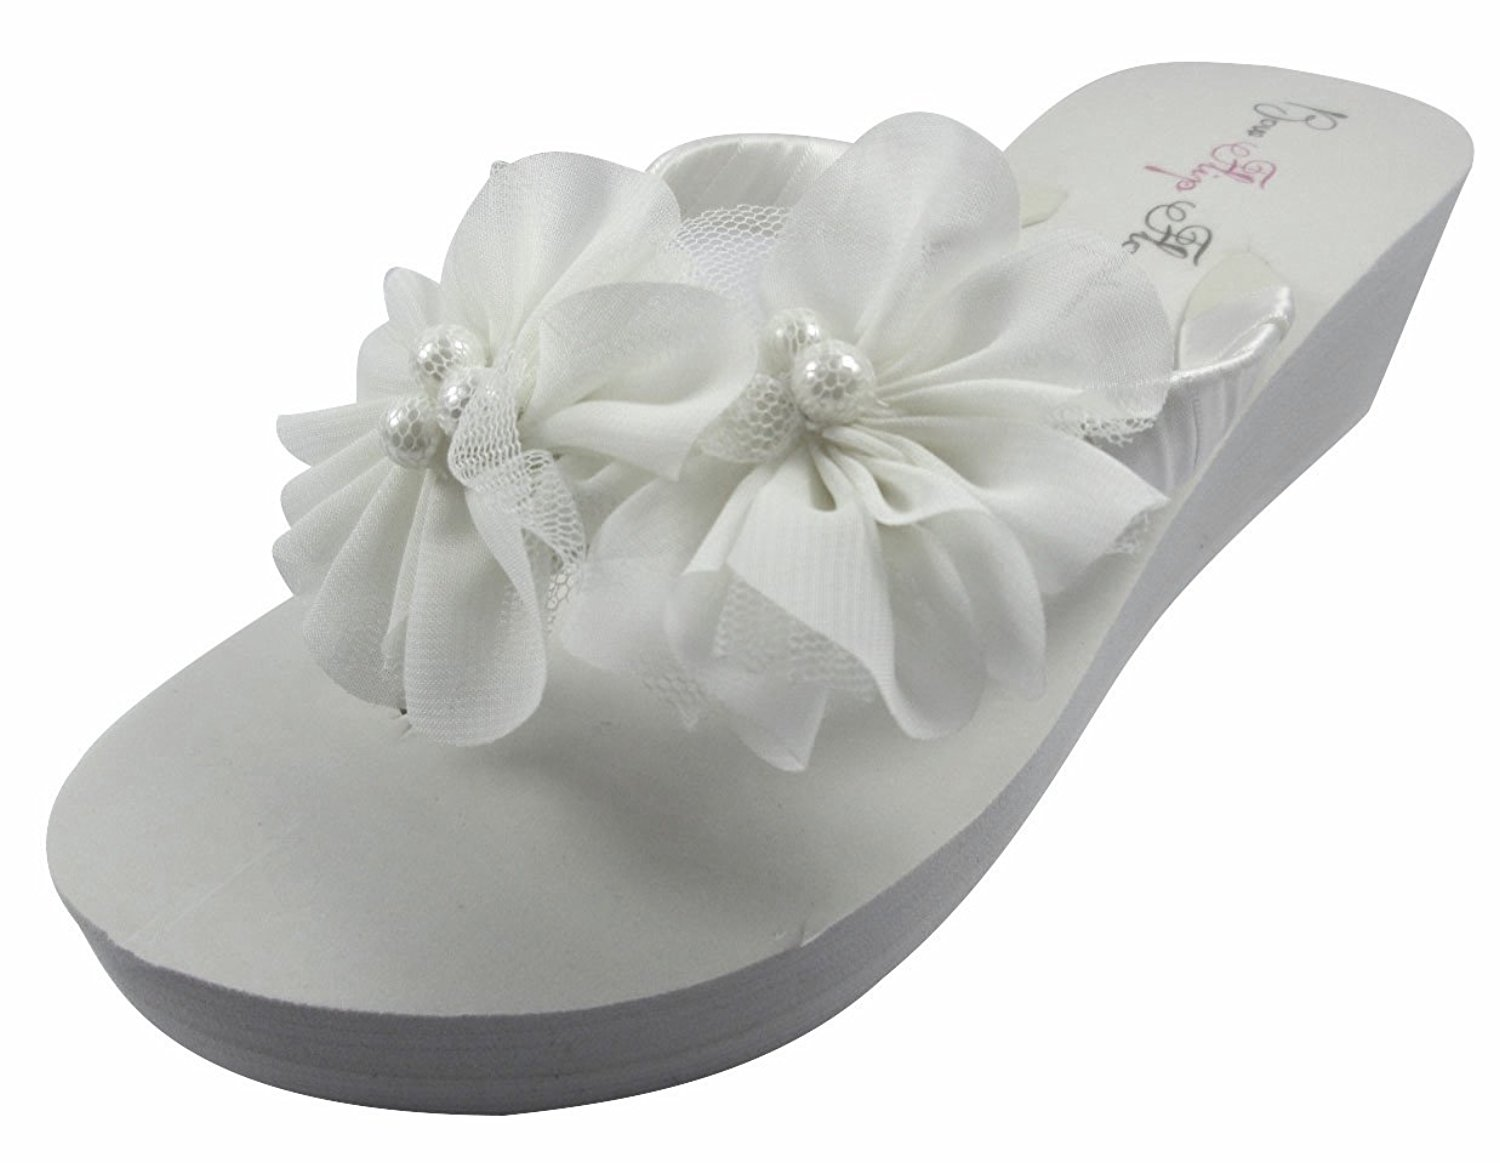 9568591e25e1 Bow Flip Flops Ivory Wedge Flip Flops Wedding Bridal White Wedge Bride  Platform Heel Flower Satin Shoes Sandals Beach